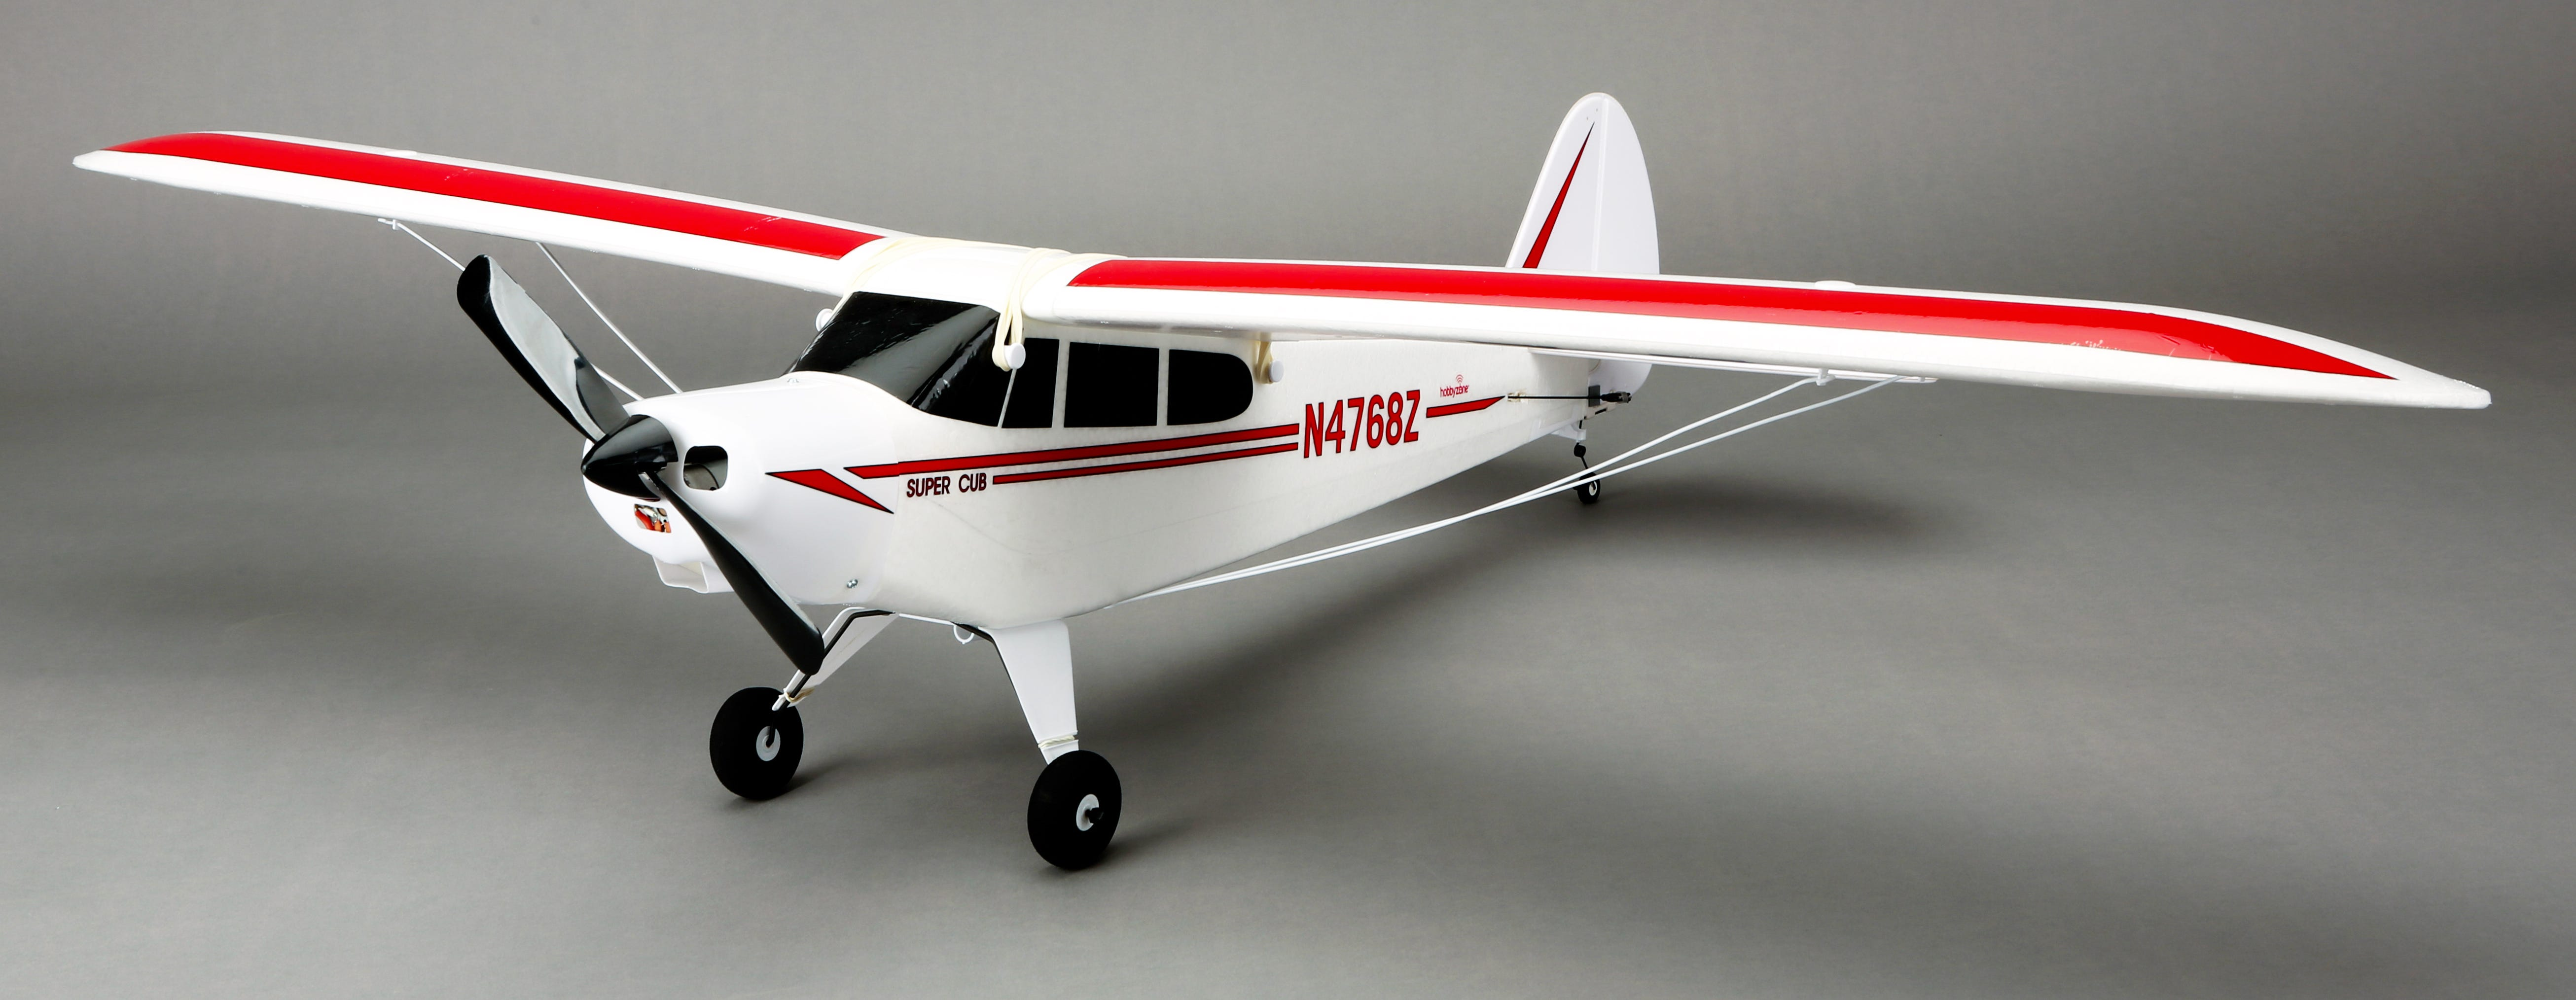 HobbyZone Super Cub 2014- Coming Soon to Modelflight